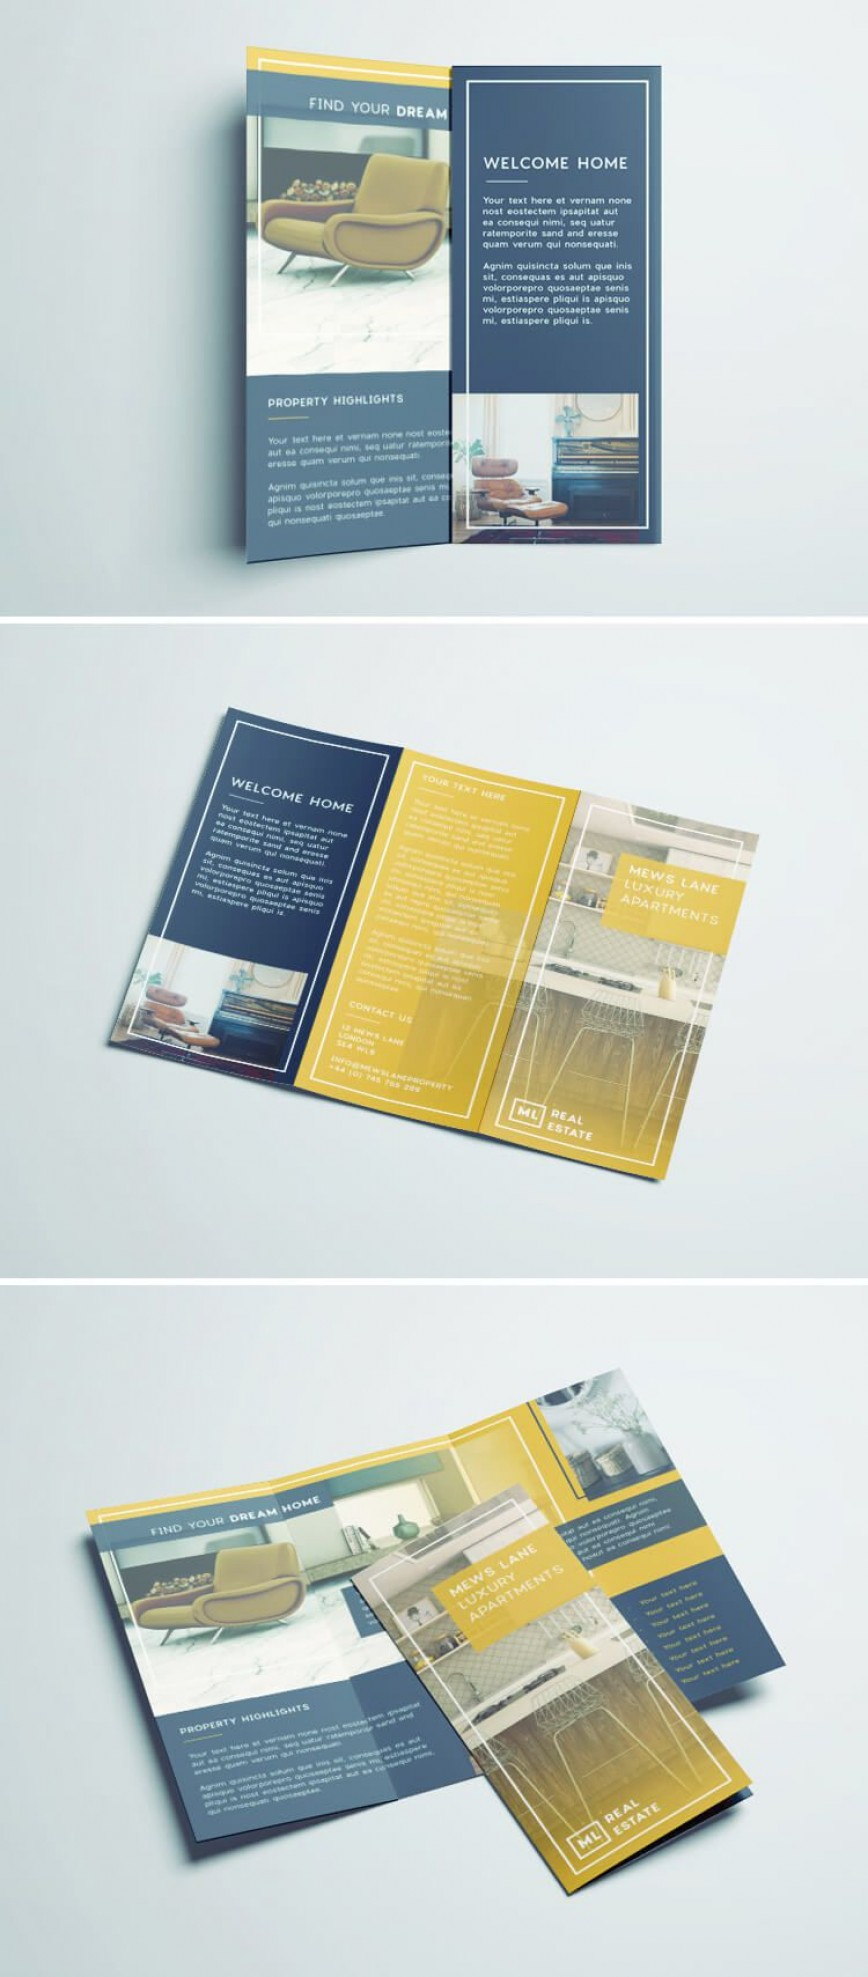 007 Amazing Tri Fold Brochure Indesign Template Example  Free Adobe868